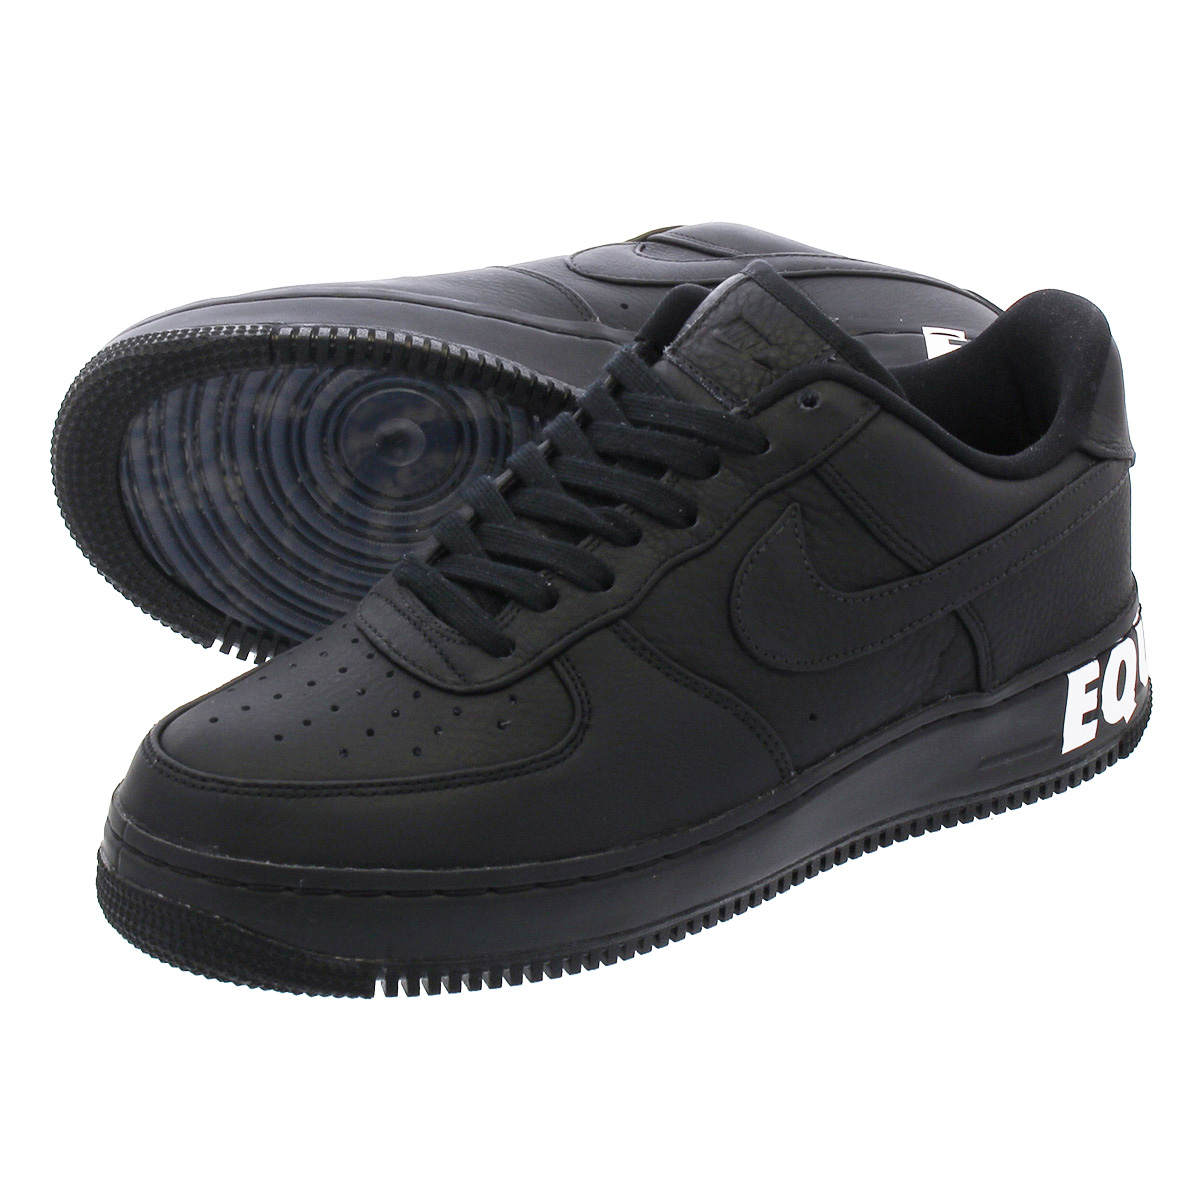 NIKE AIR FORCE 1 CMFT 【EQUALITY】 ナイキ エア フォース 1 コンフォート BLACK/METALLIC GOLD/WHITE aq2125-001